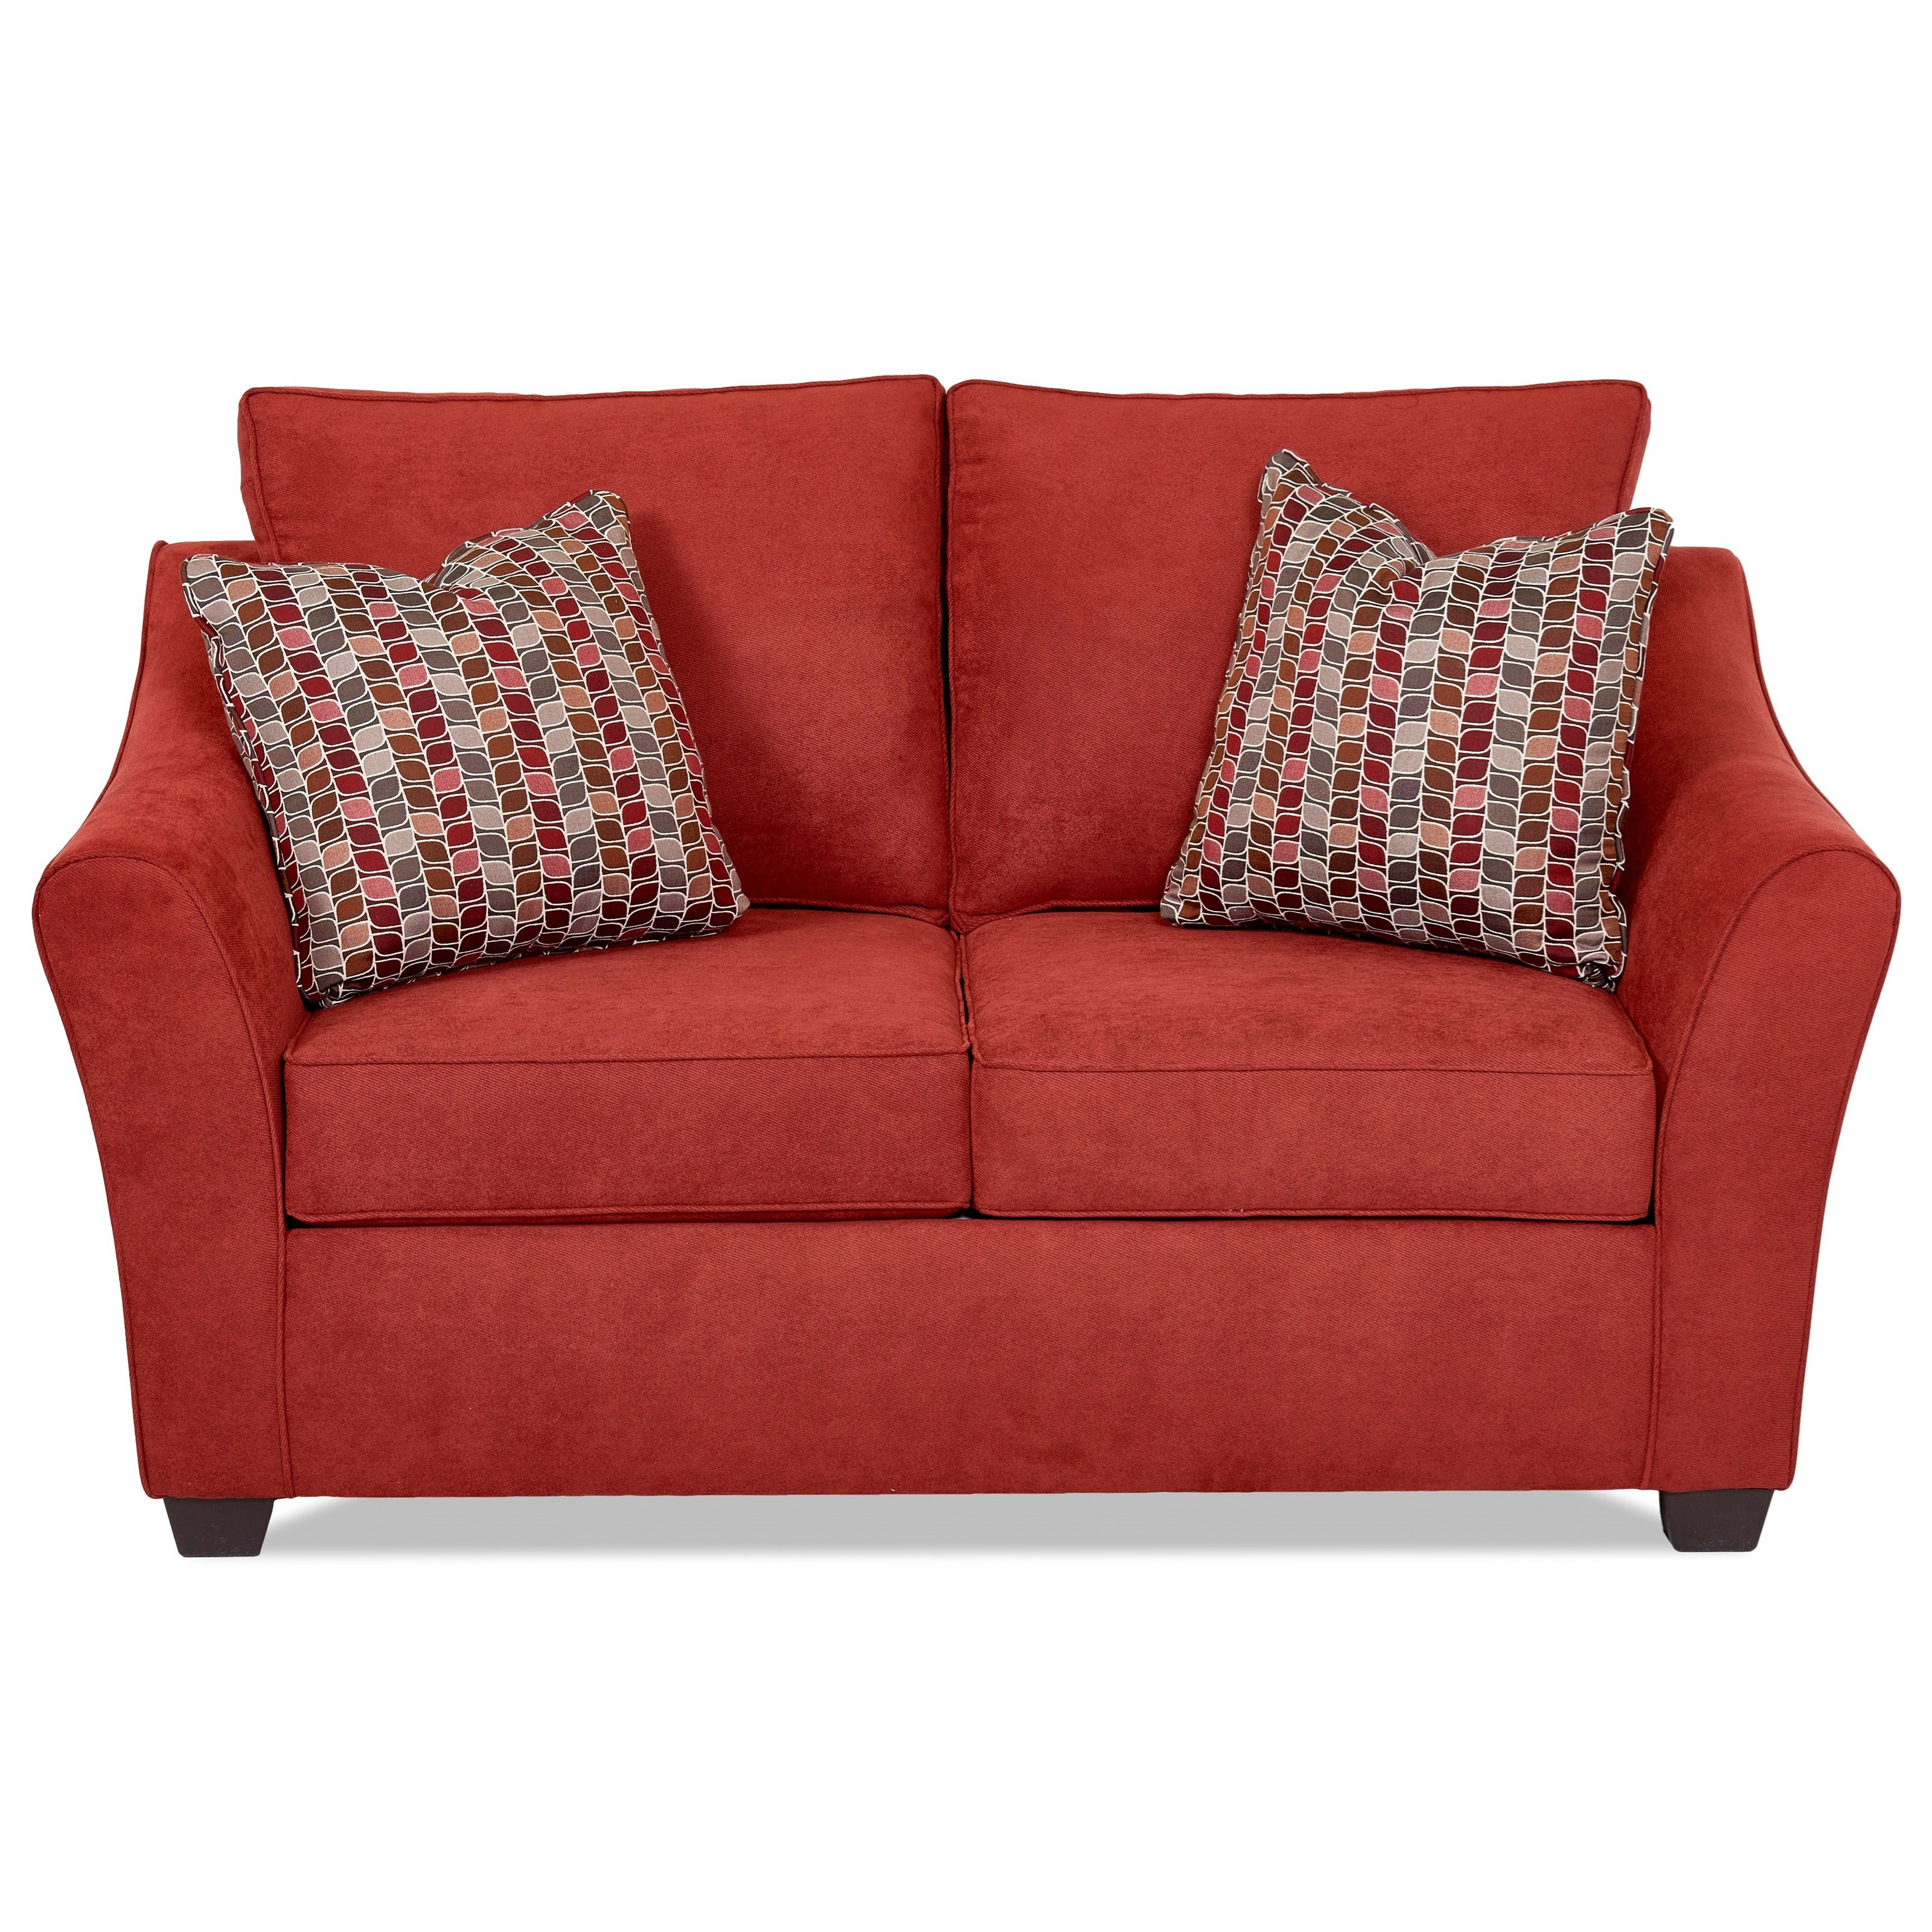 Linville Loveseat by Klaussner at Catalog Outlet